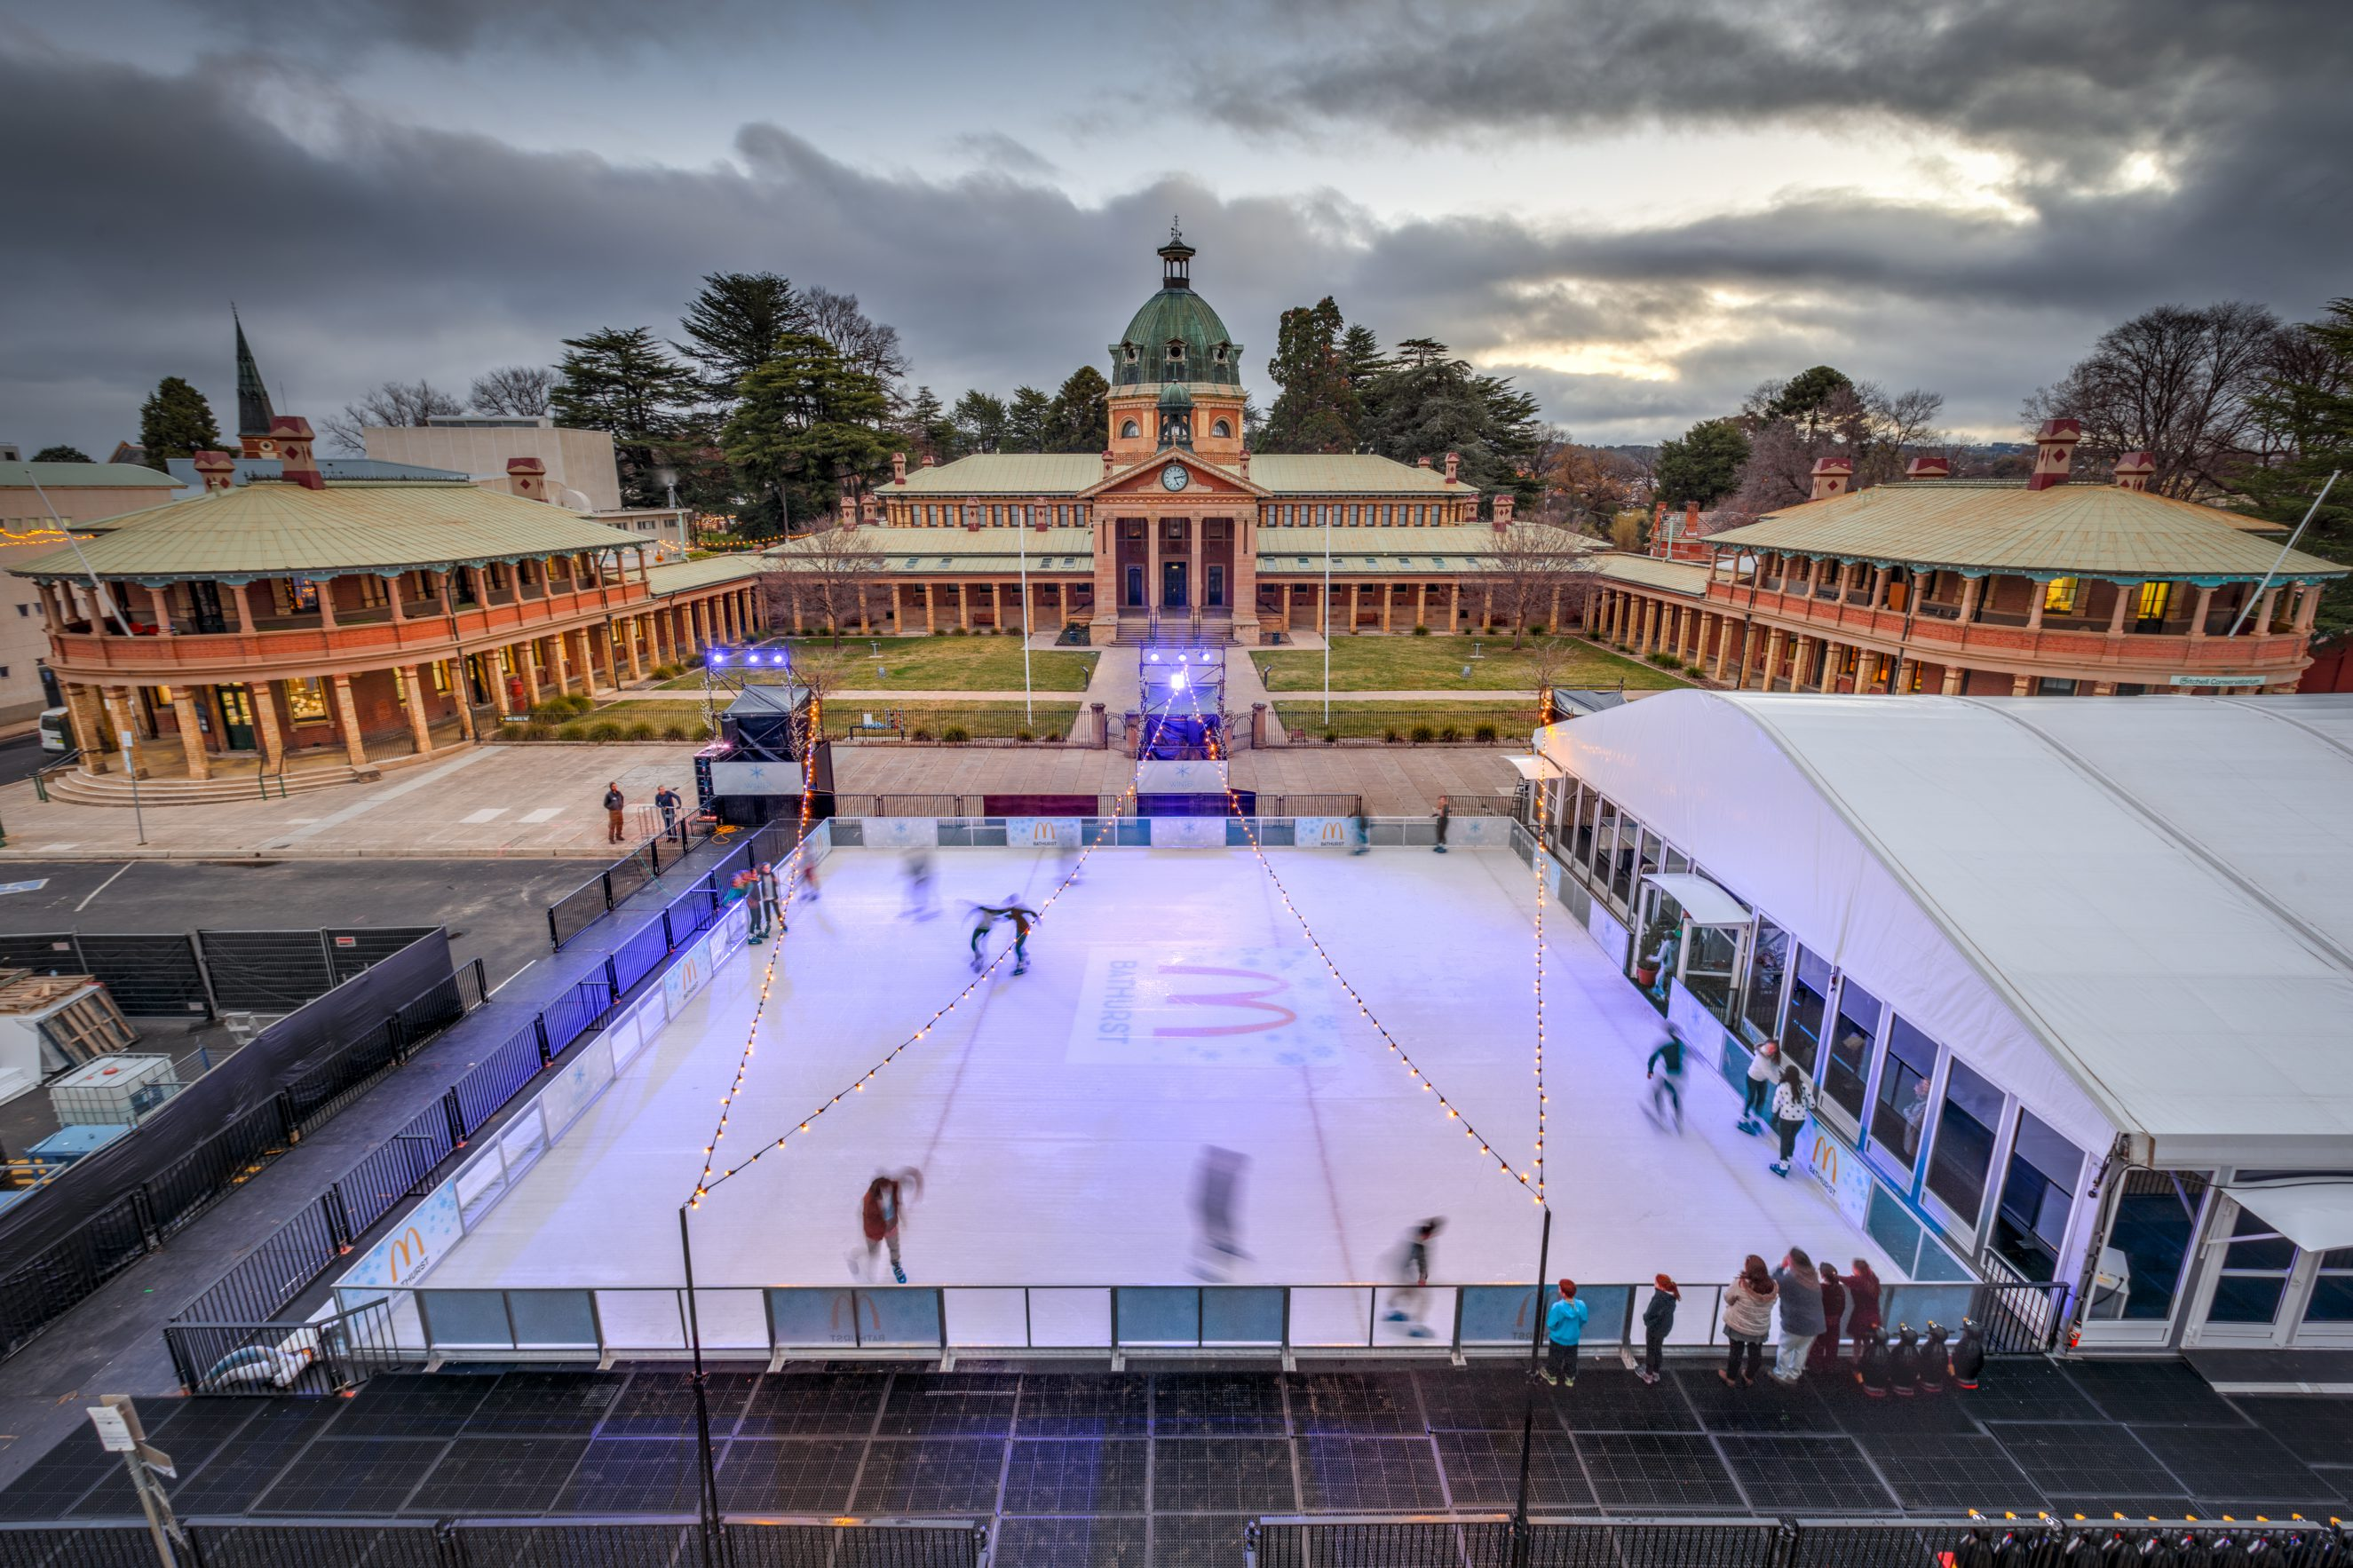 2016 – Aerial view of Ice Rink and Bathurst Court House